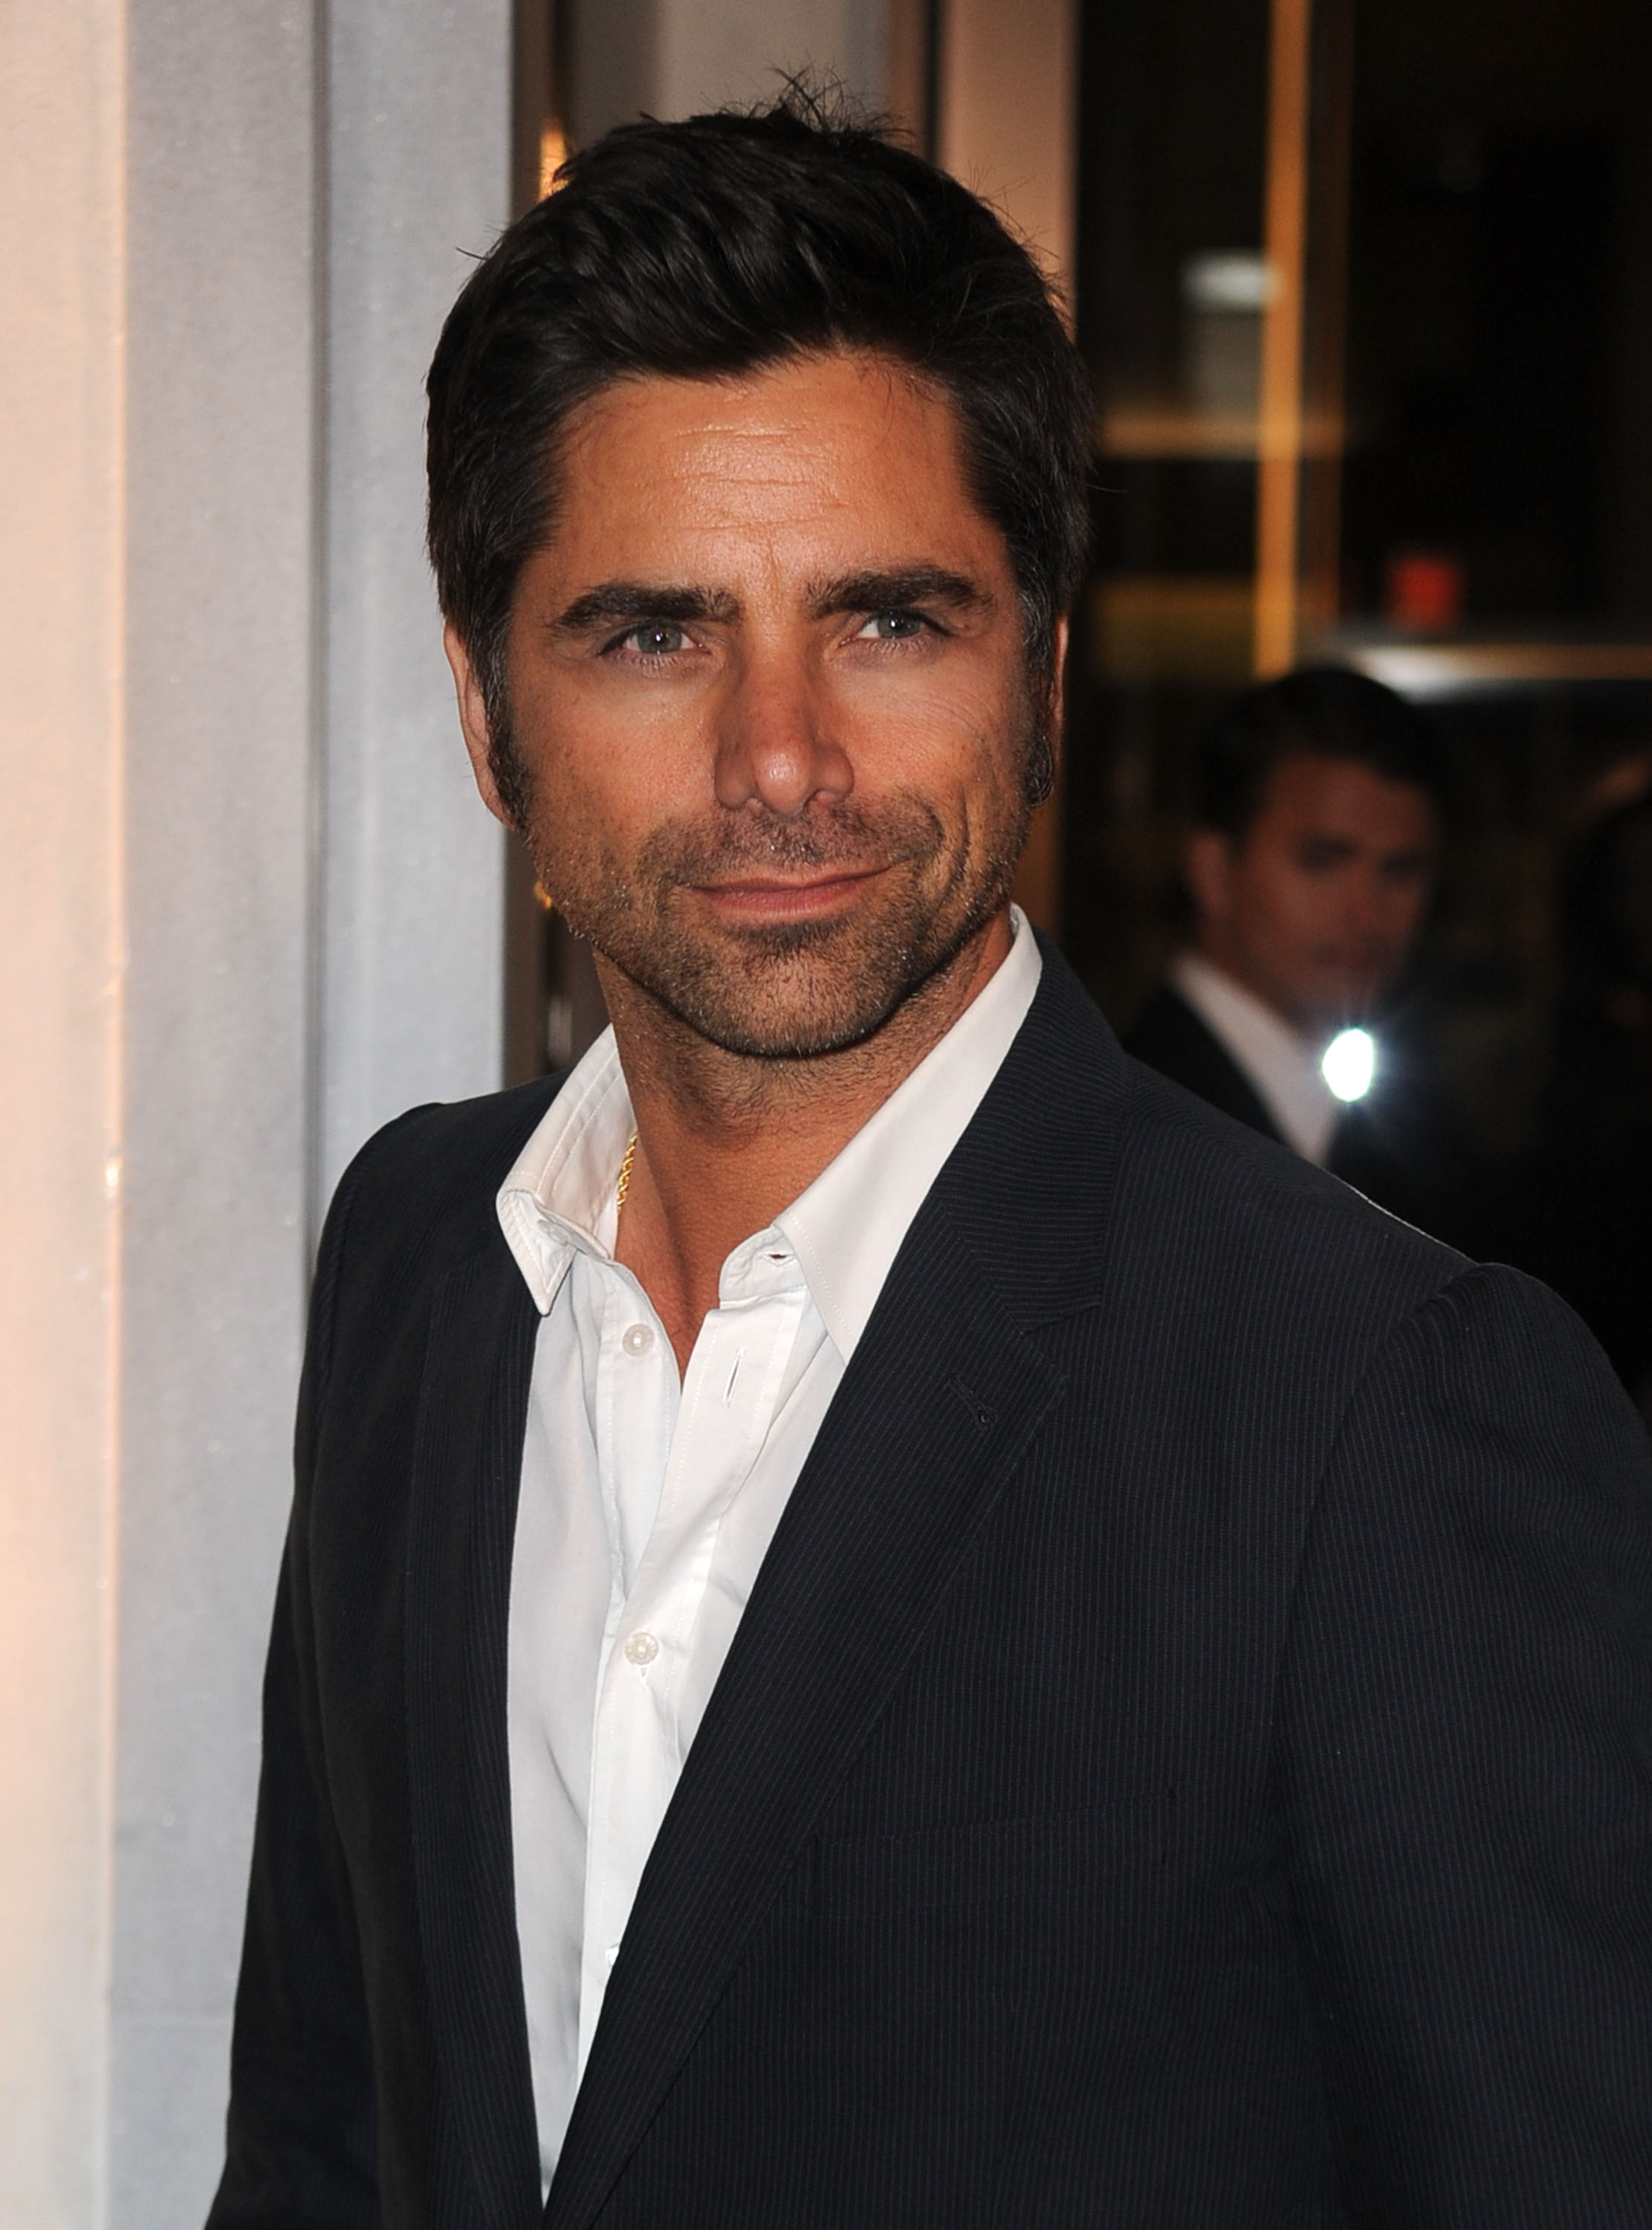 Charlie Sheen Stamos John Stamos to Replace Charlie